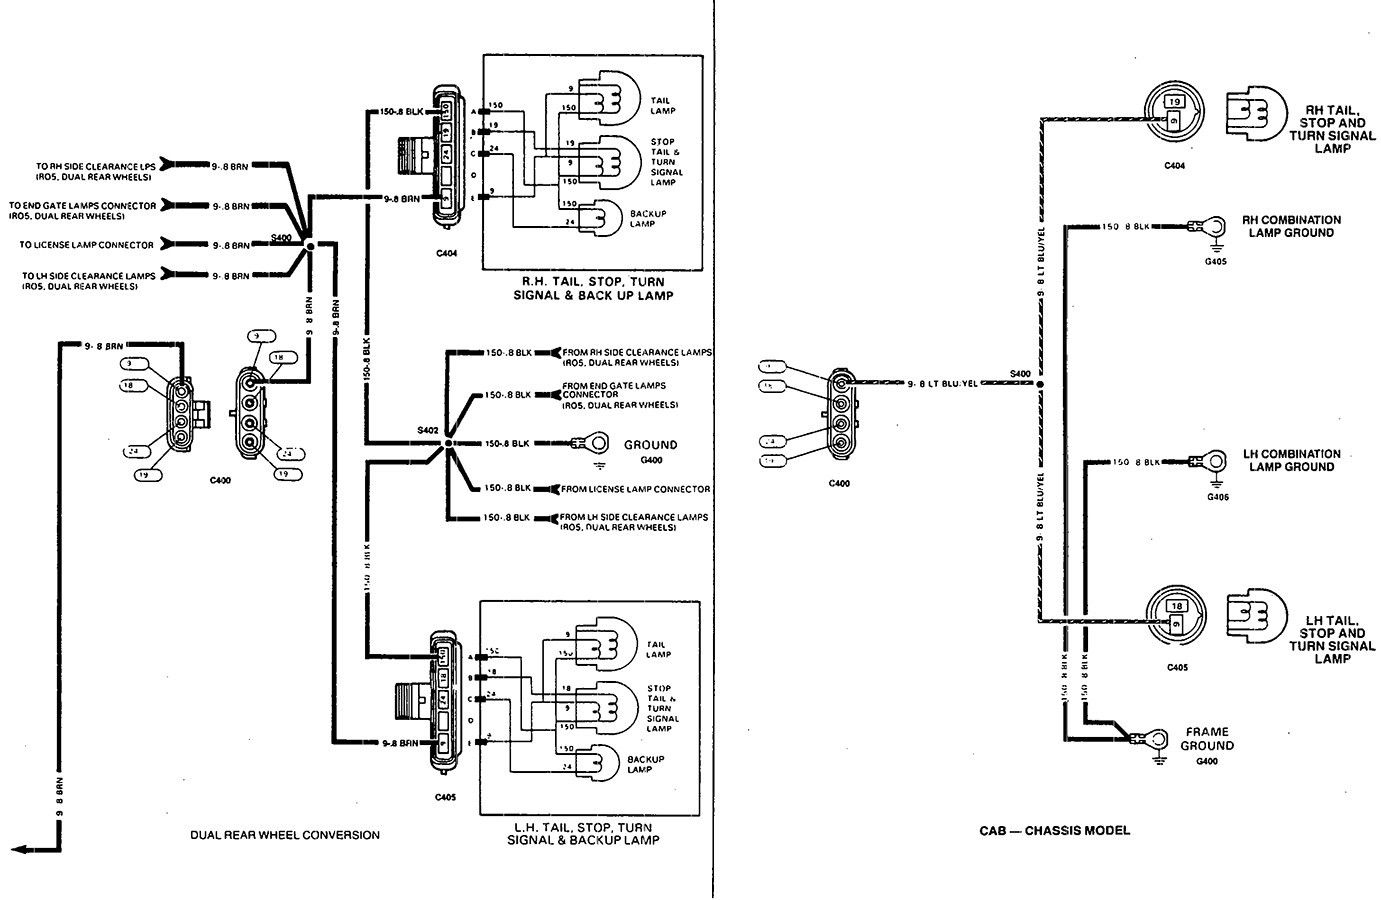 2003 Trailblazer Tail Light Circuit Diagram Awesome In 2020